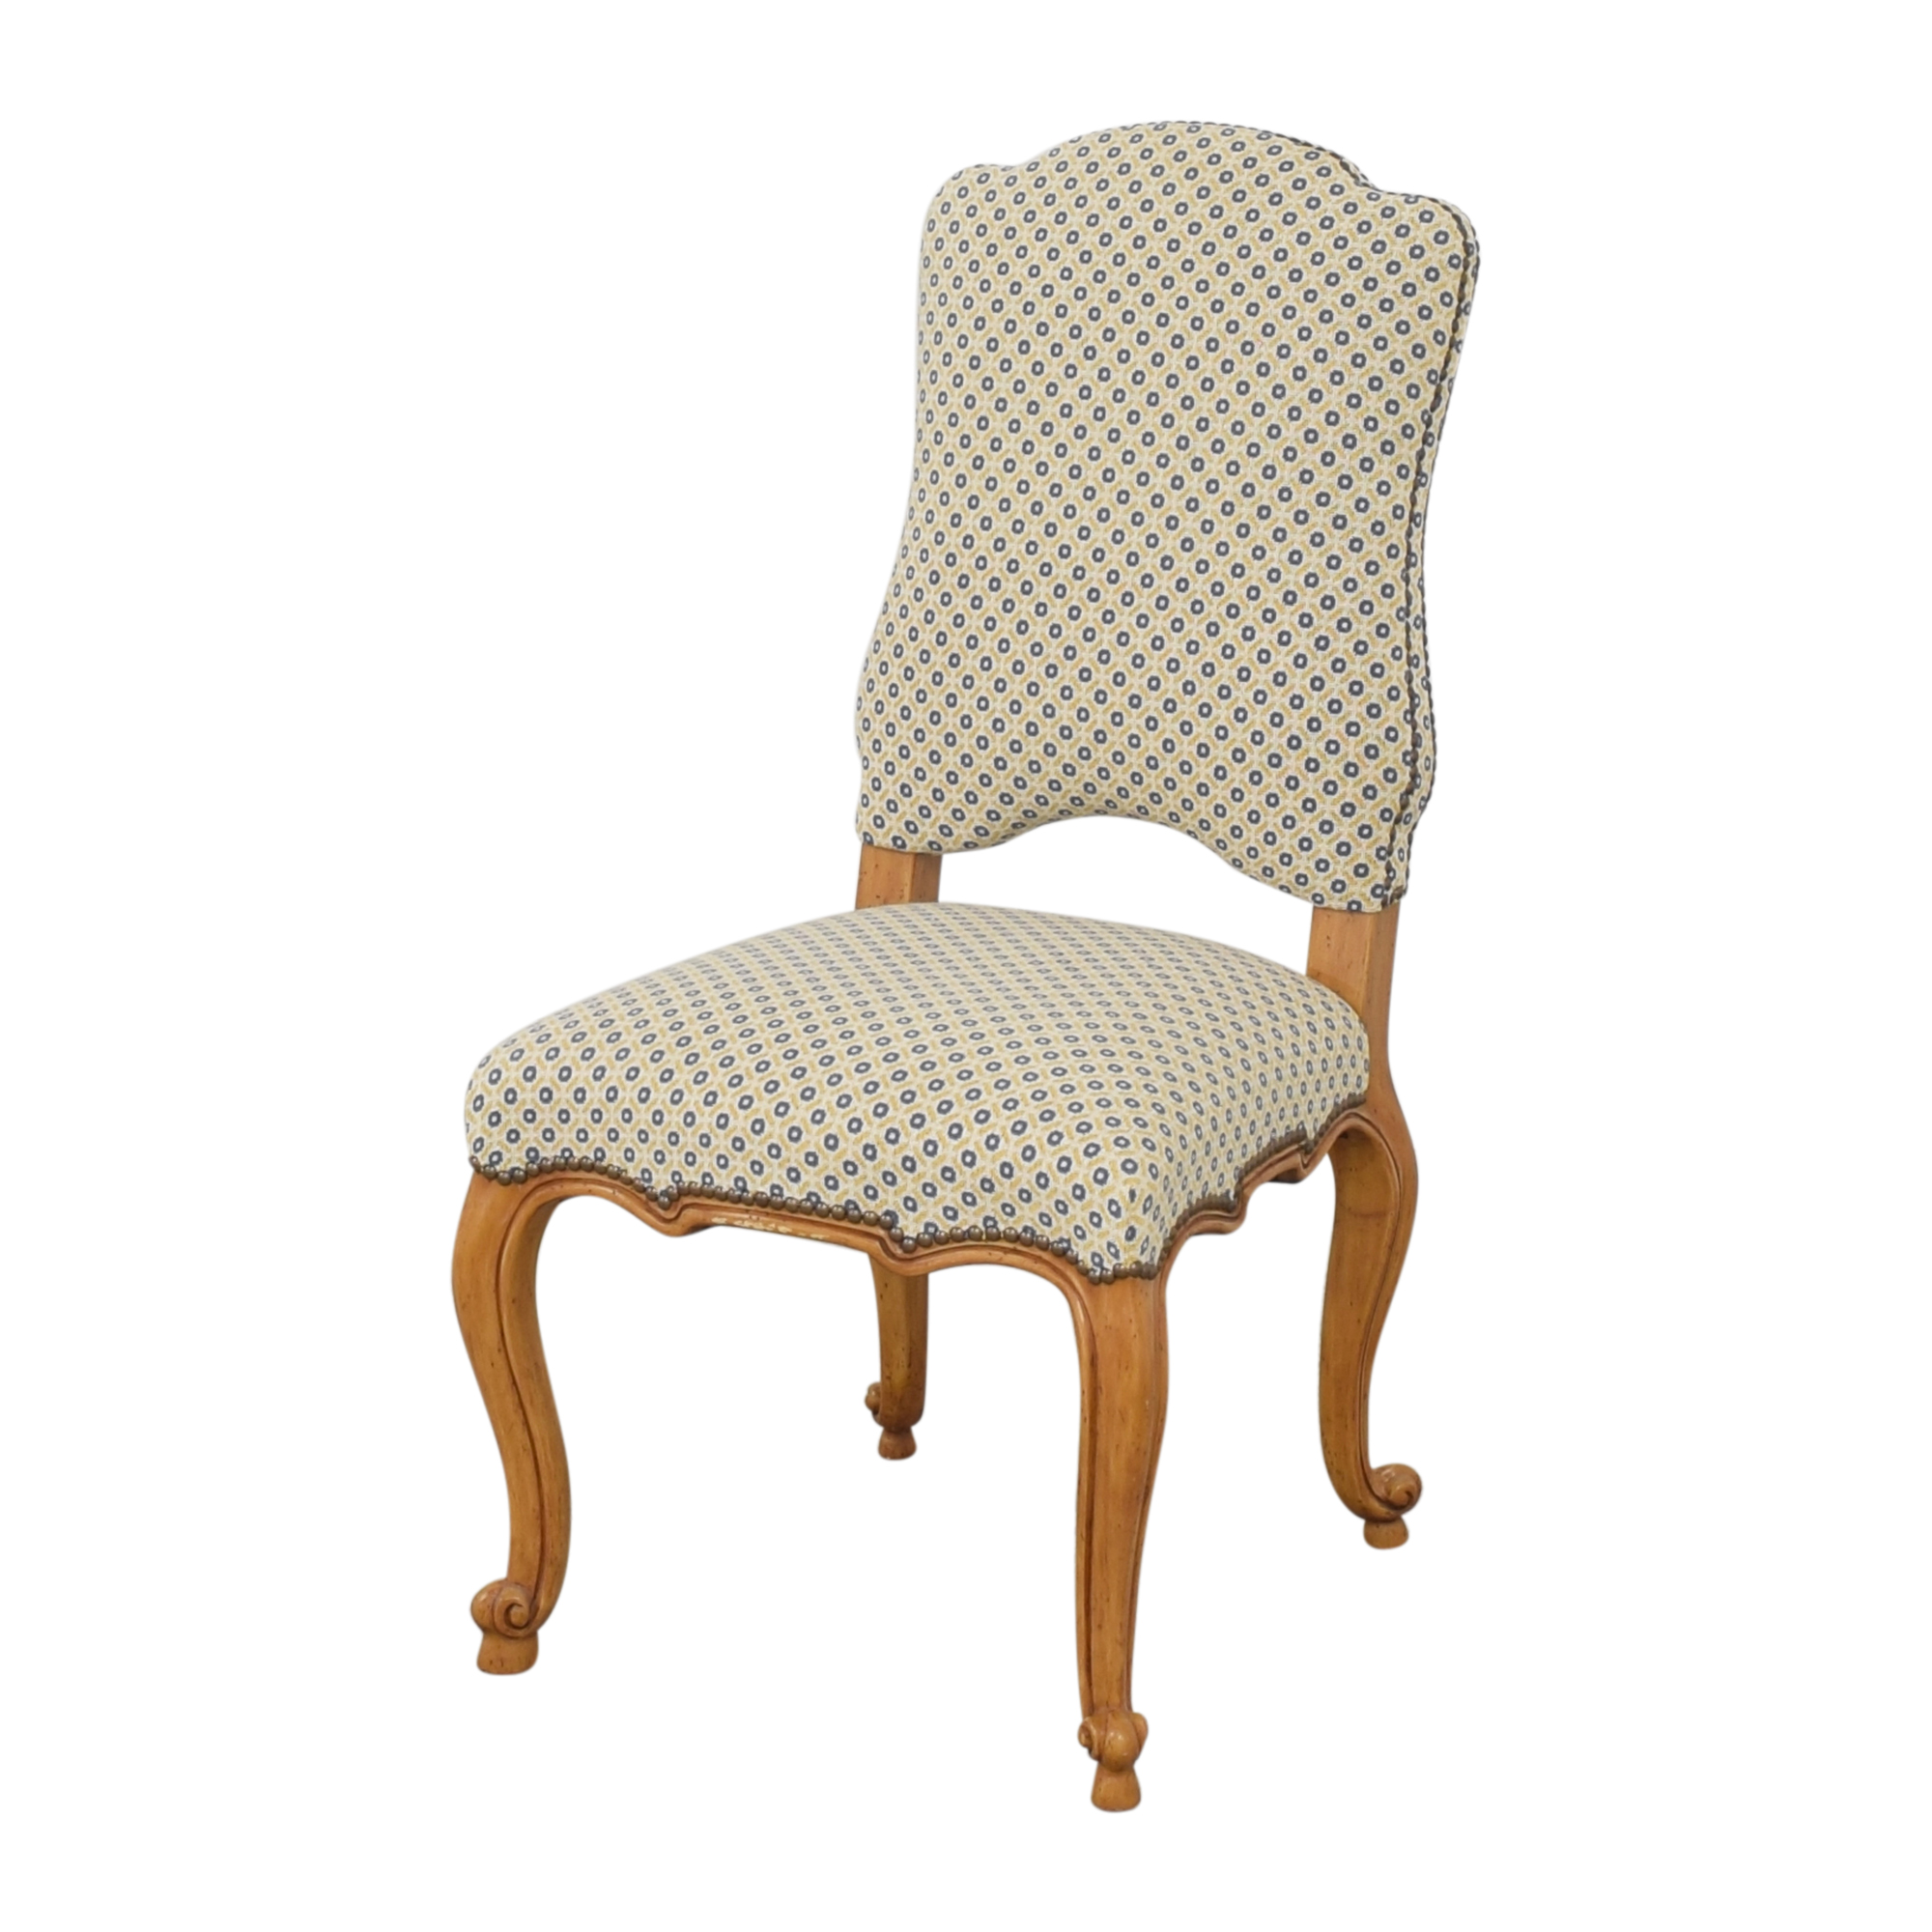 Minton-Spidell Minton-Spidell Regence Dining Side Chairs discount